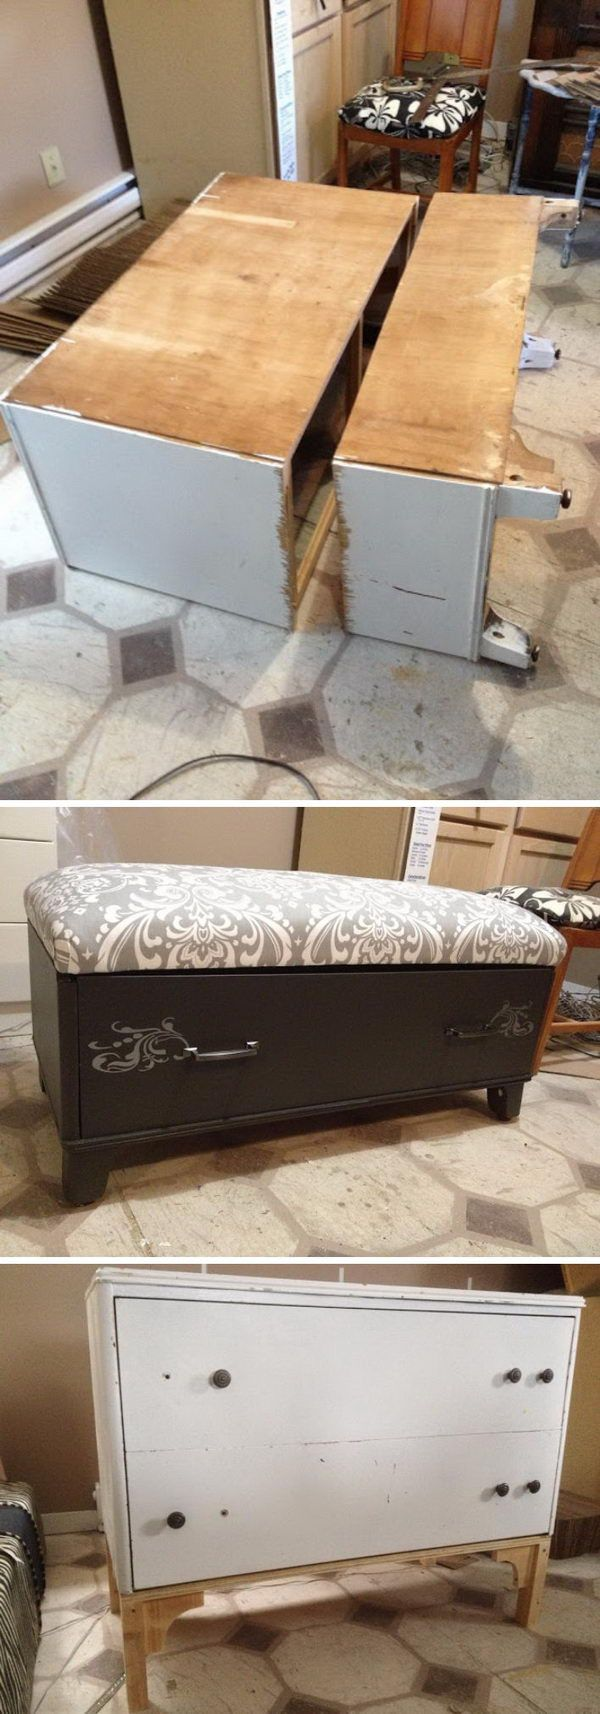 Dresser to Bathroom Vanity and Bench.   furniture upcycling   Pinterest